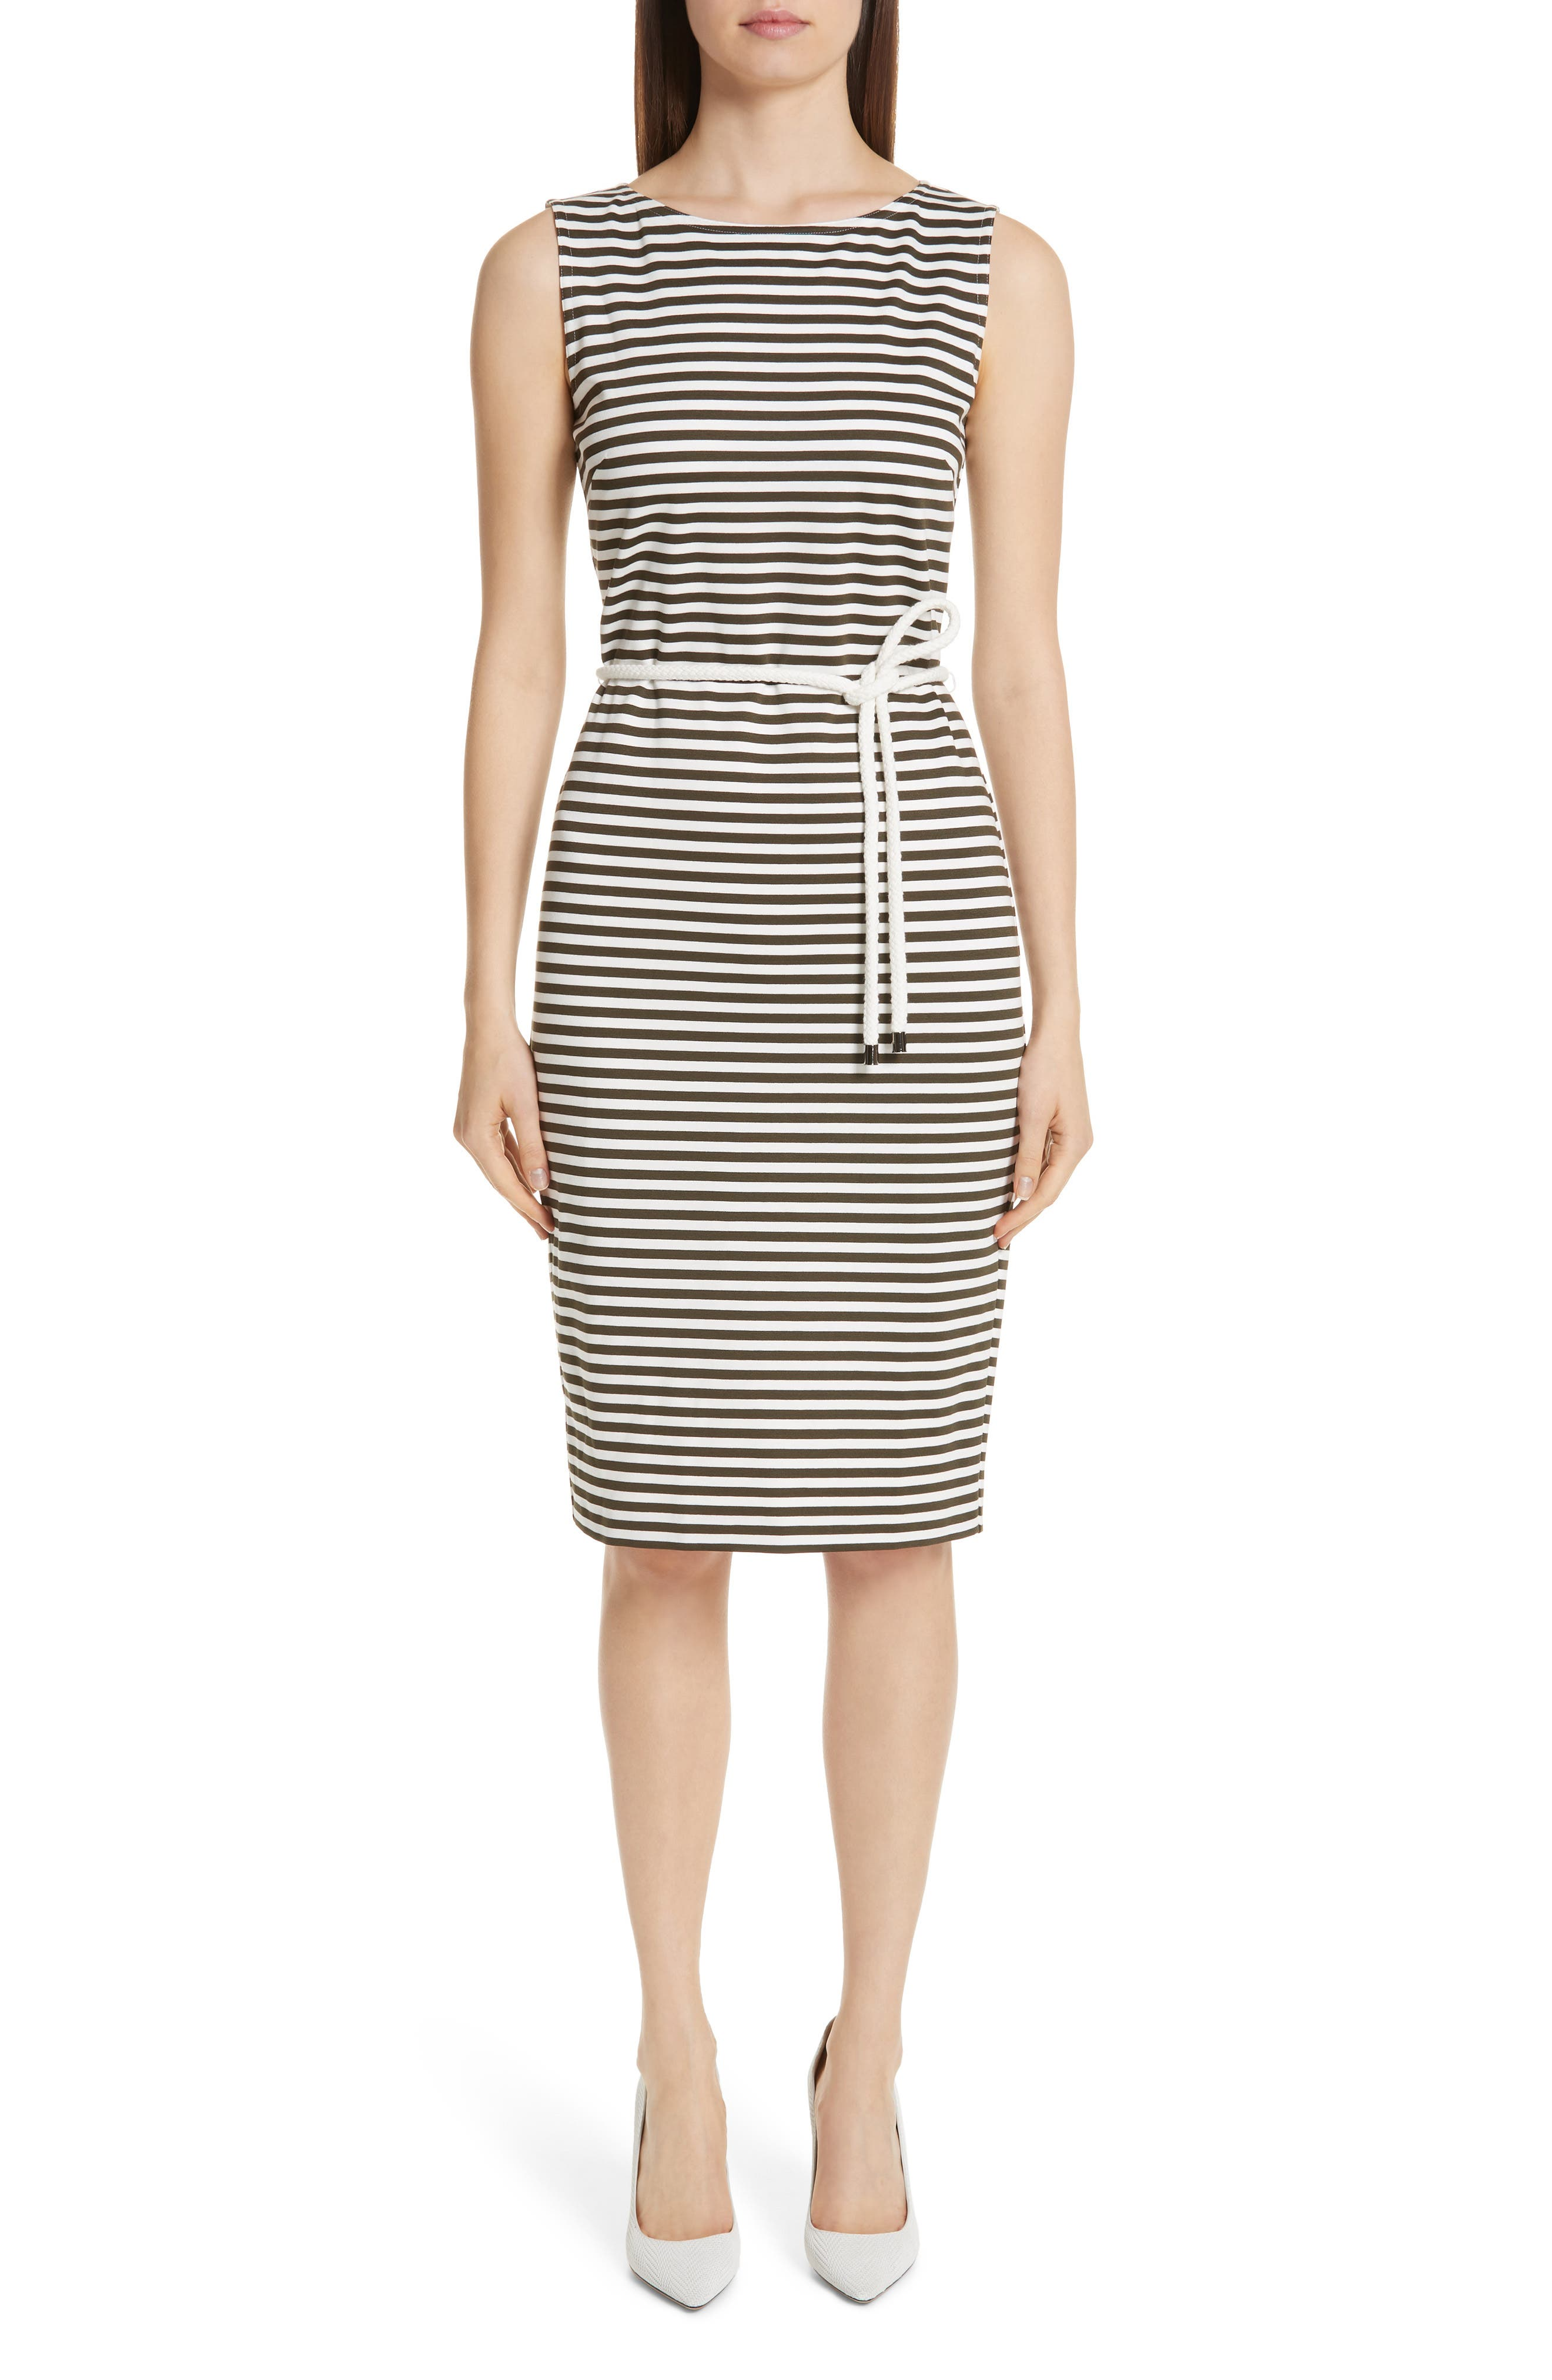 MAX MARA, Comica Stripe Dress, Main thumbnail 1, color, KAKI